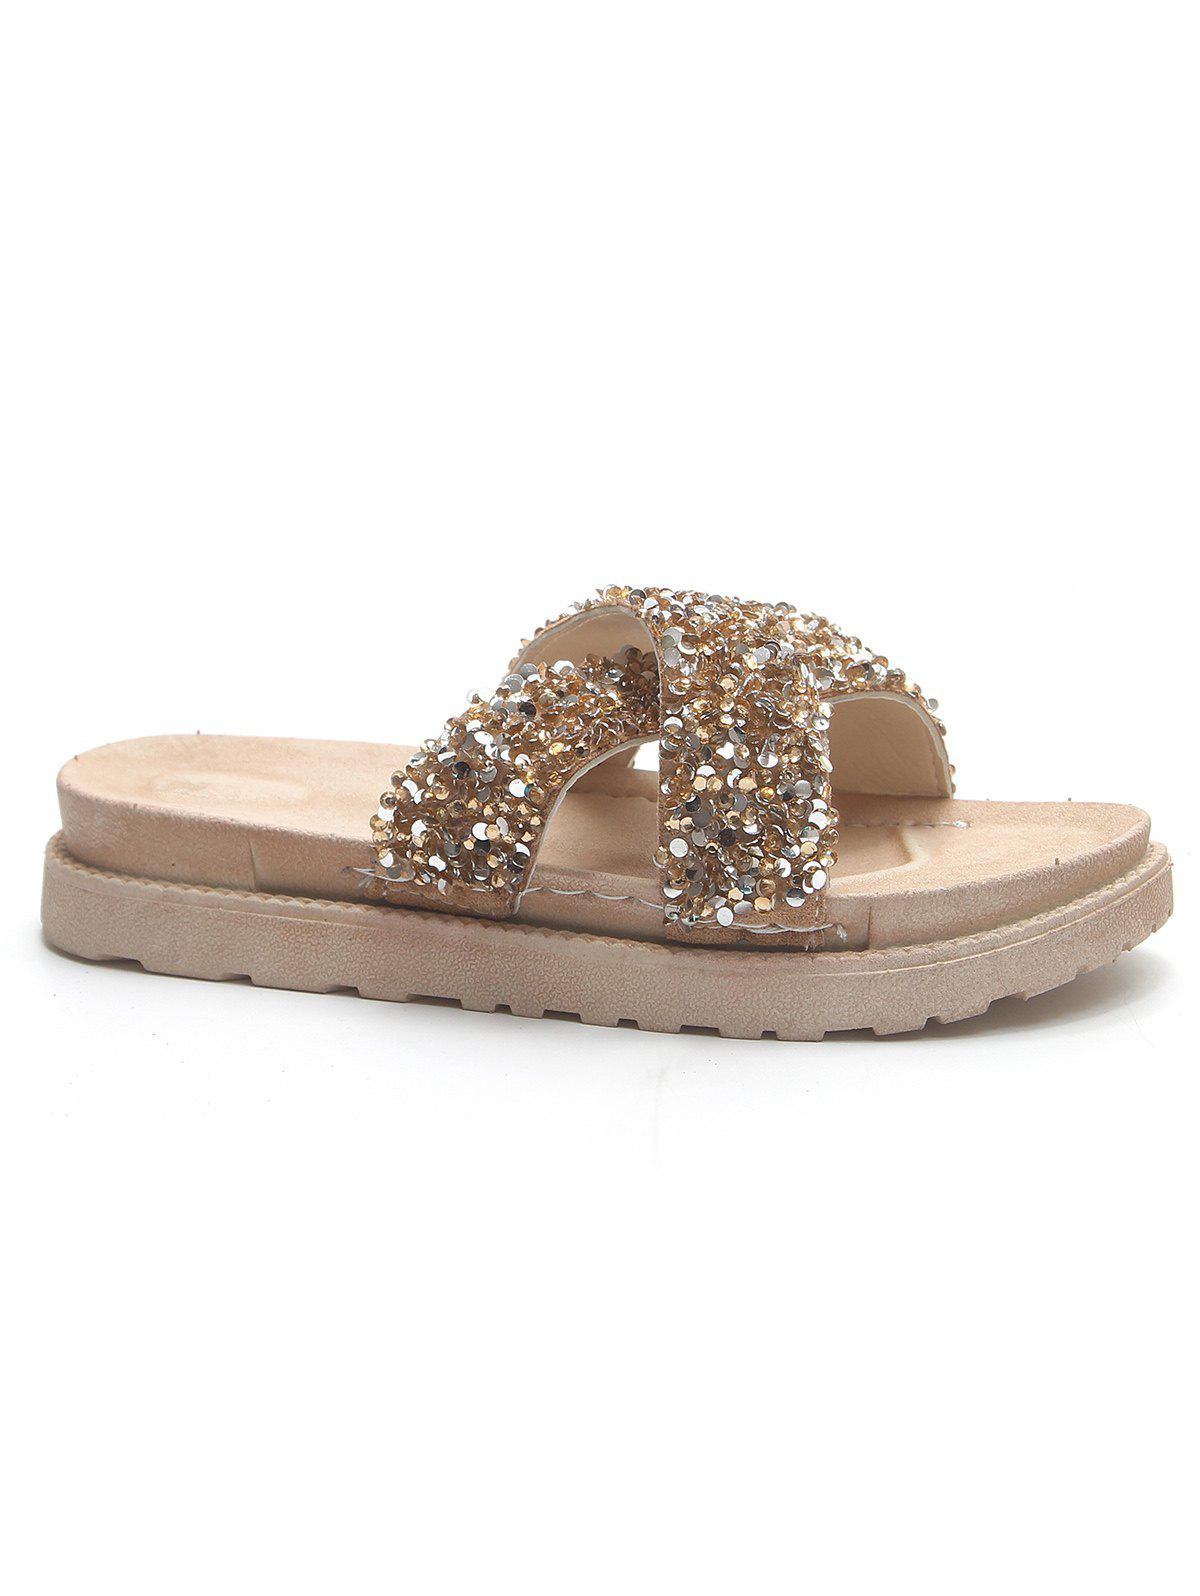 Shop Sequins Chic Vacation Leisure Slippers